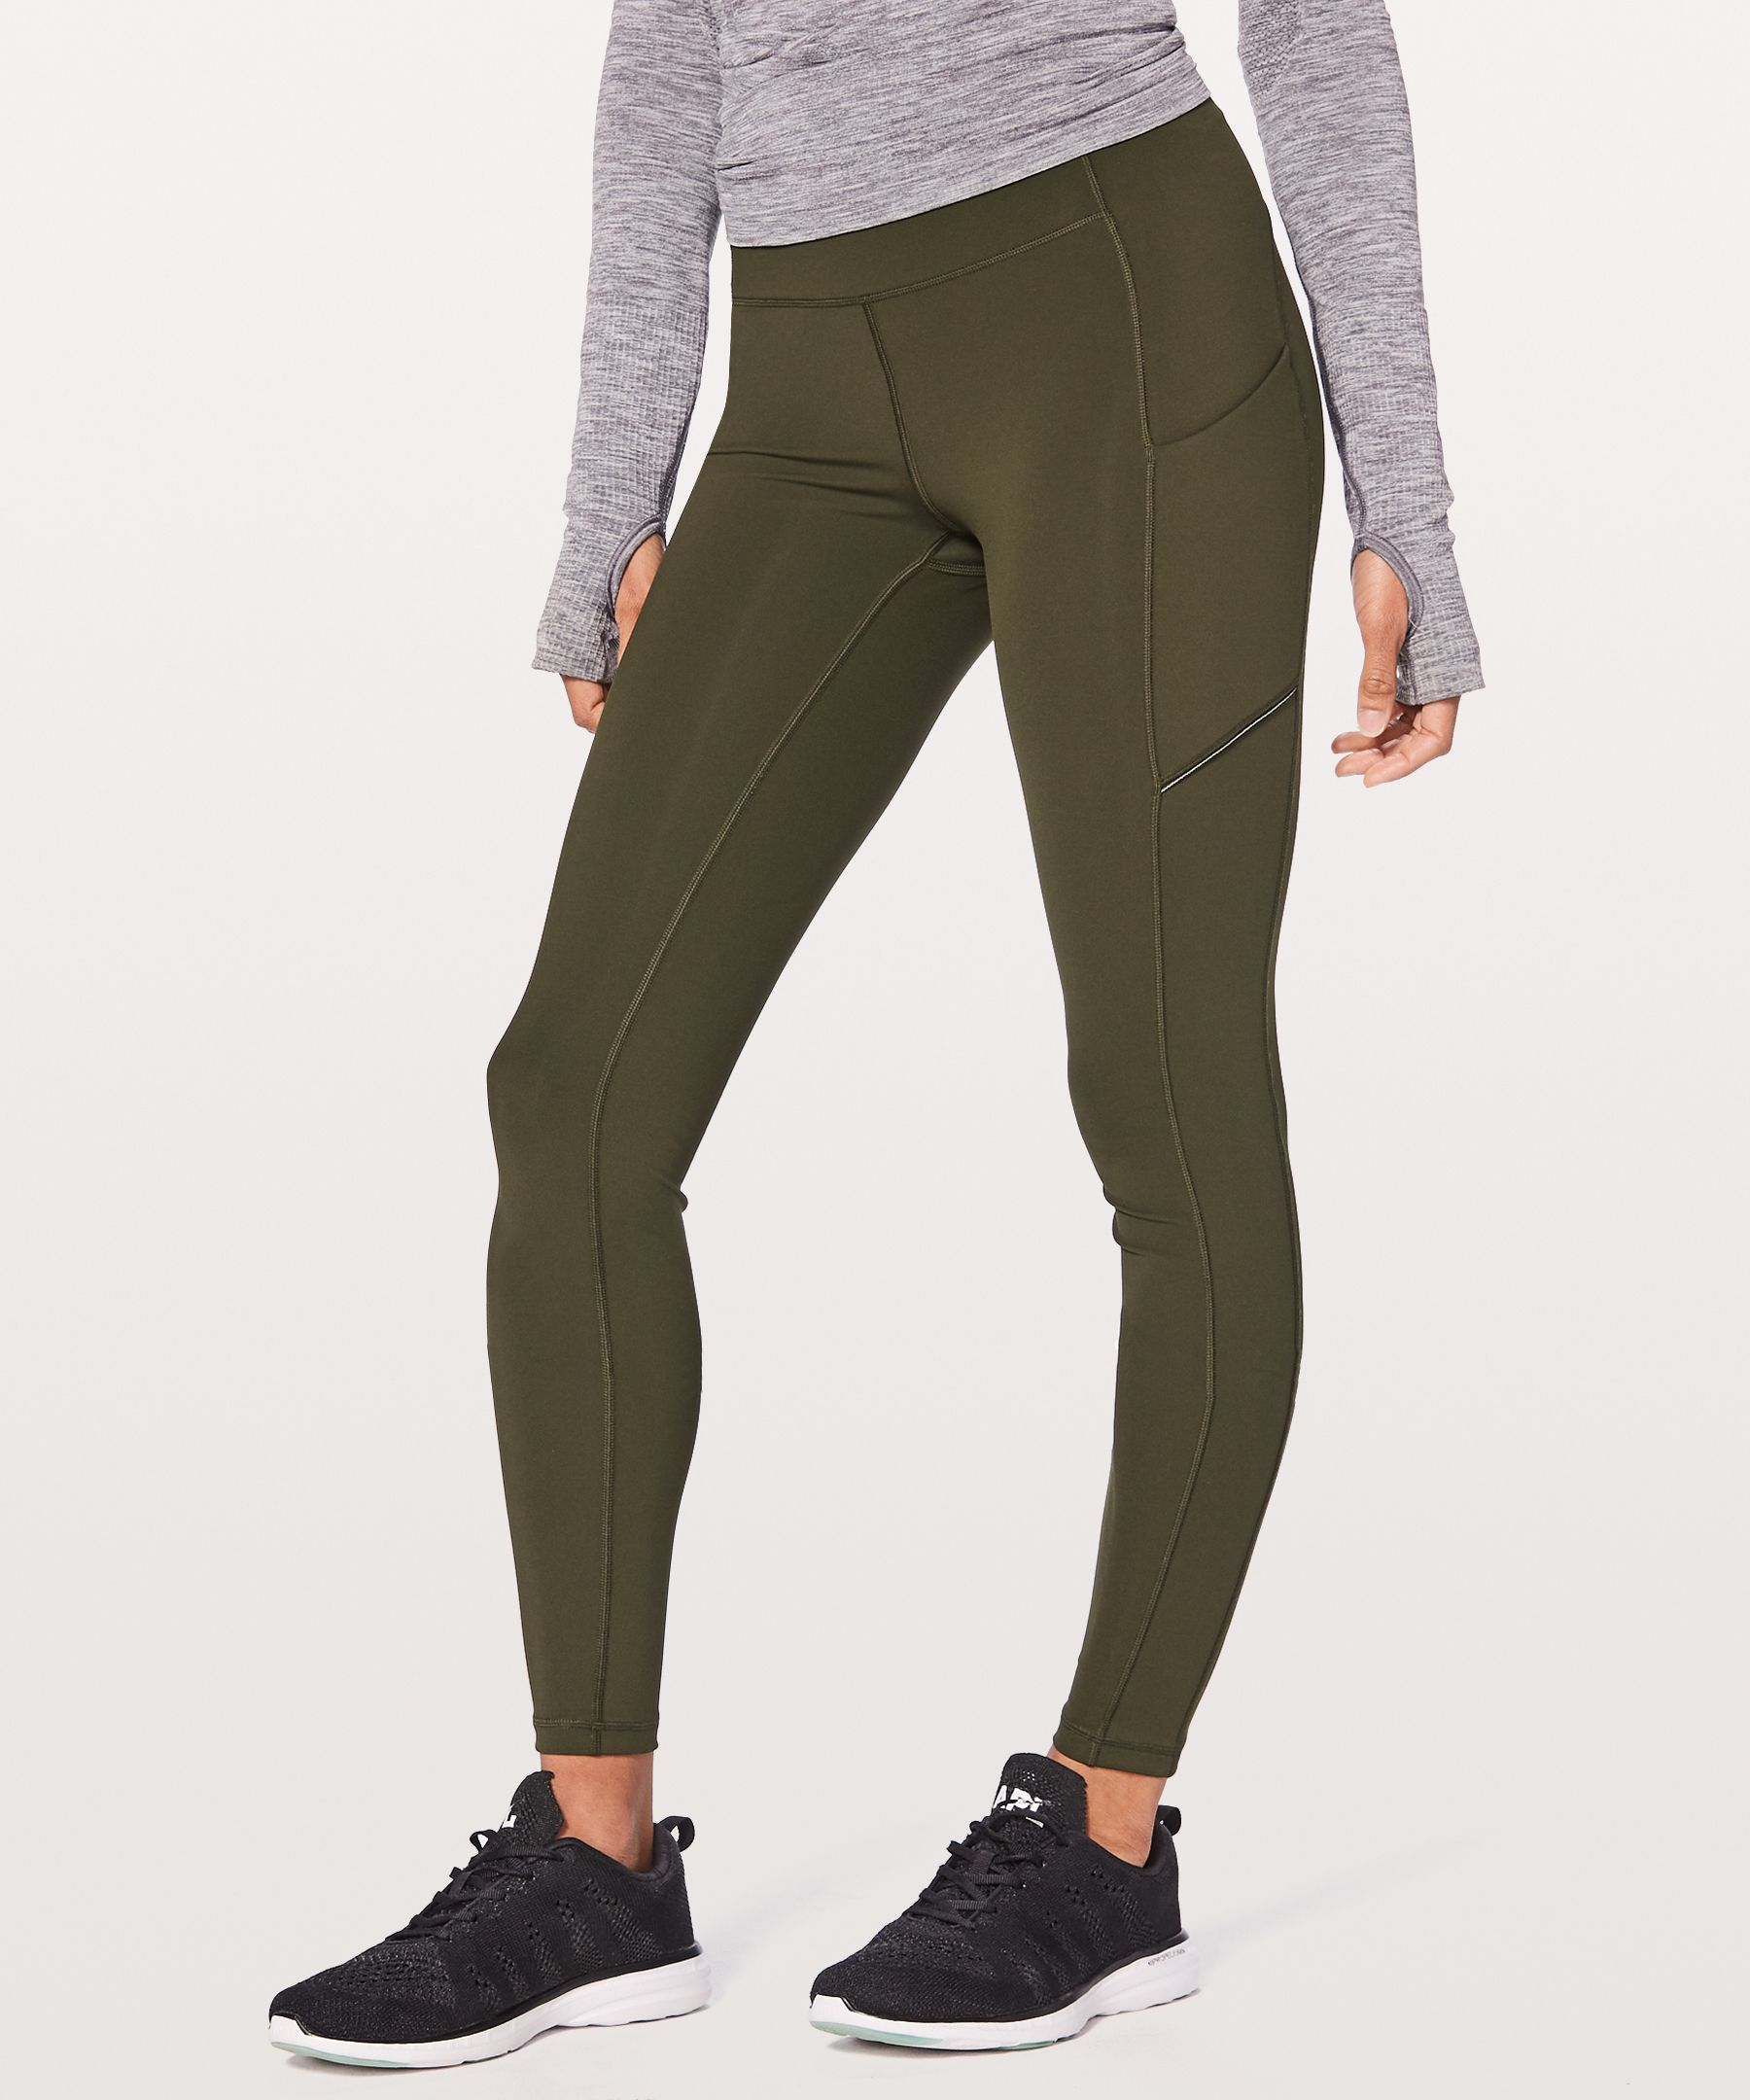 We designed these tights with easy-access pockets and water-repellent fabric so you can focus on your run—not your gear.